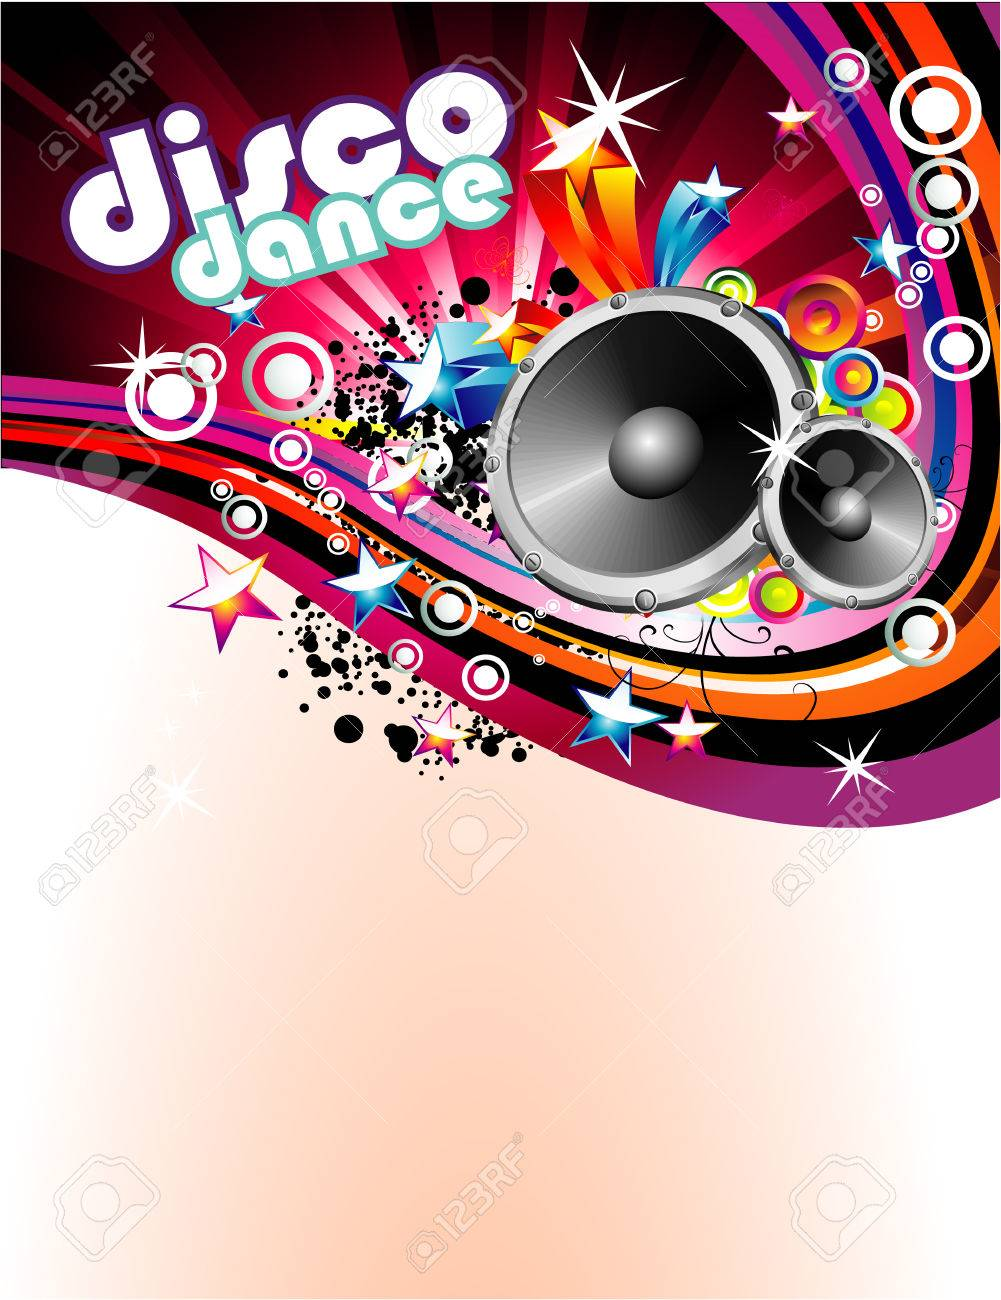 Abstract Music and Disco Colorful Flyer Background Stock Vector - 4896802